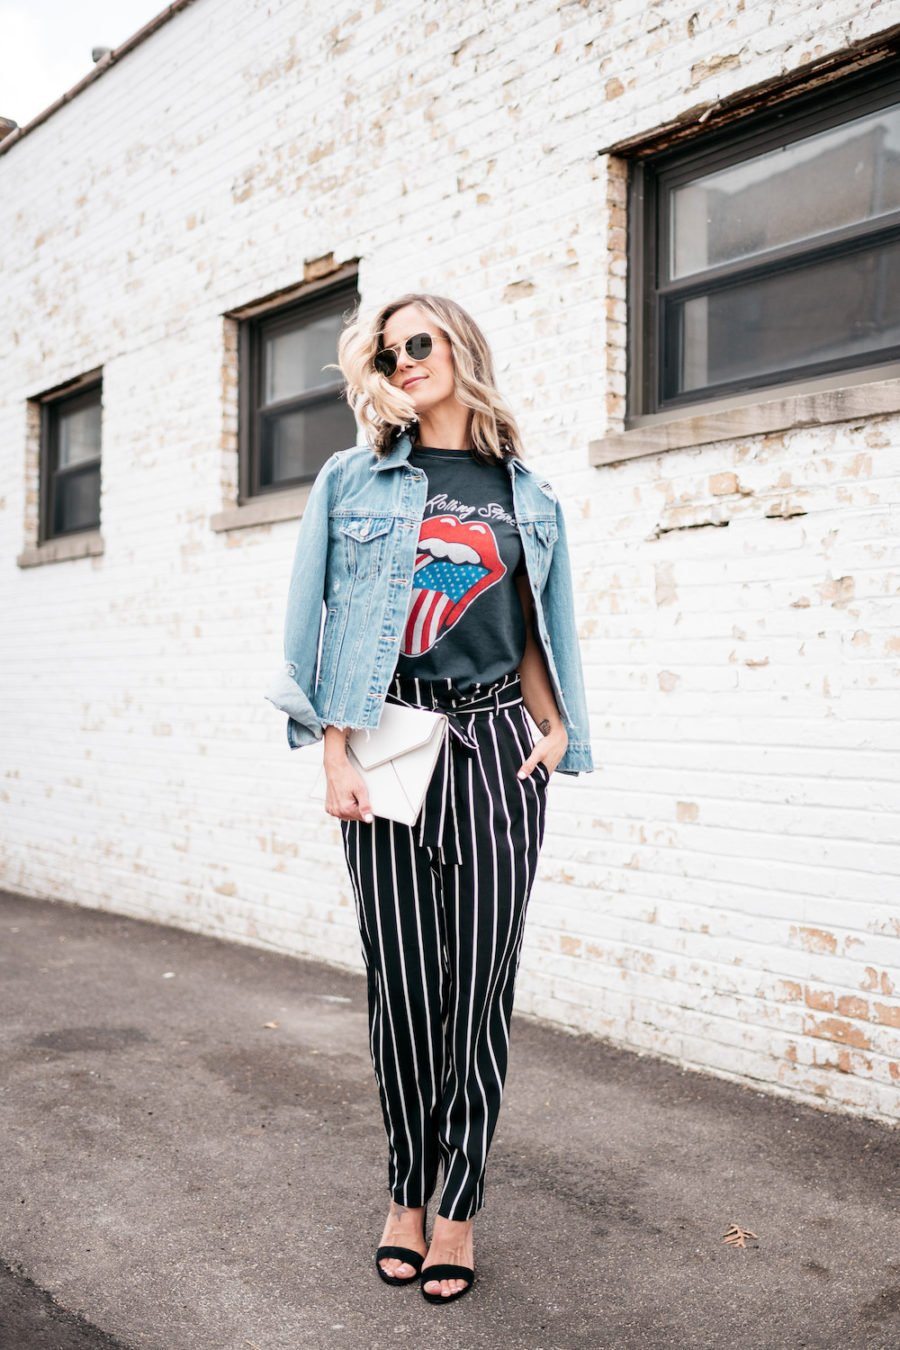 Band tee, striped pants, denim jacket, heels, clutch, sunglasses